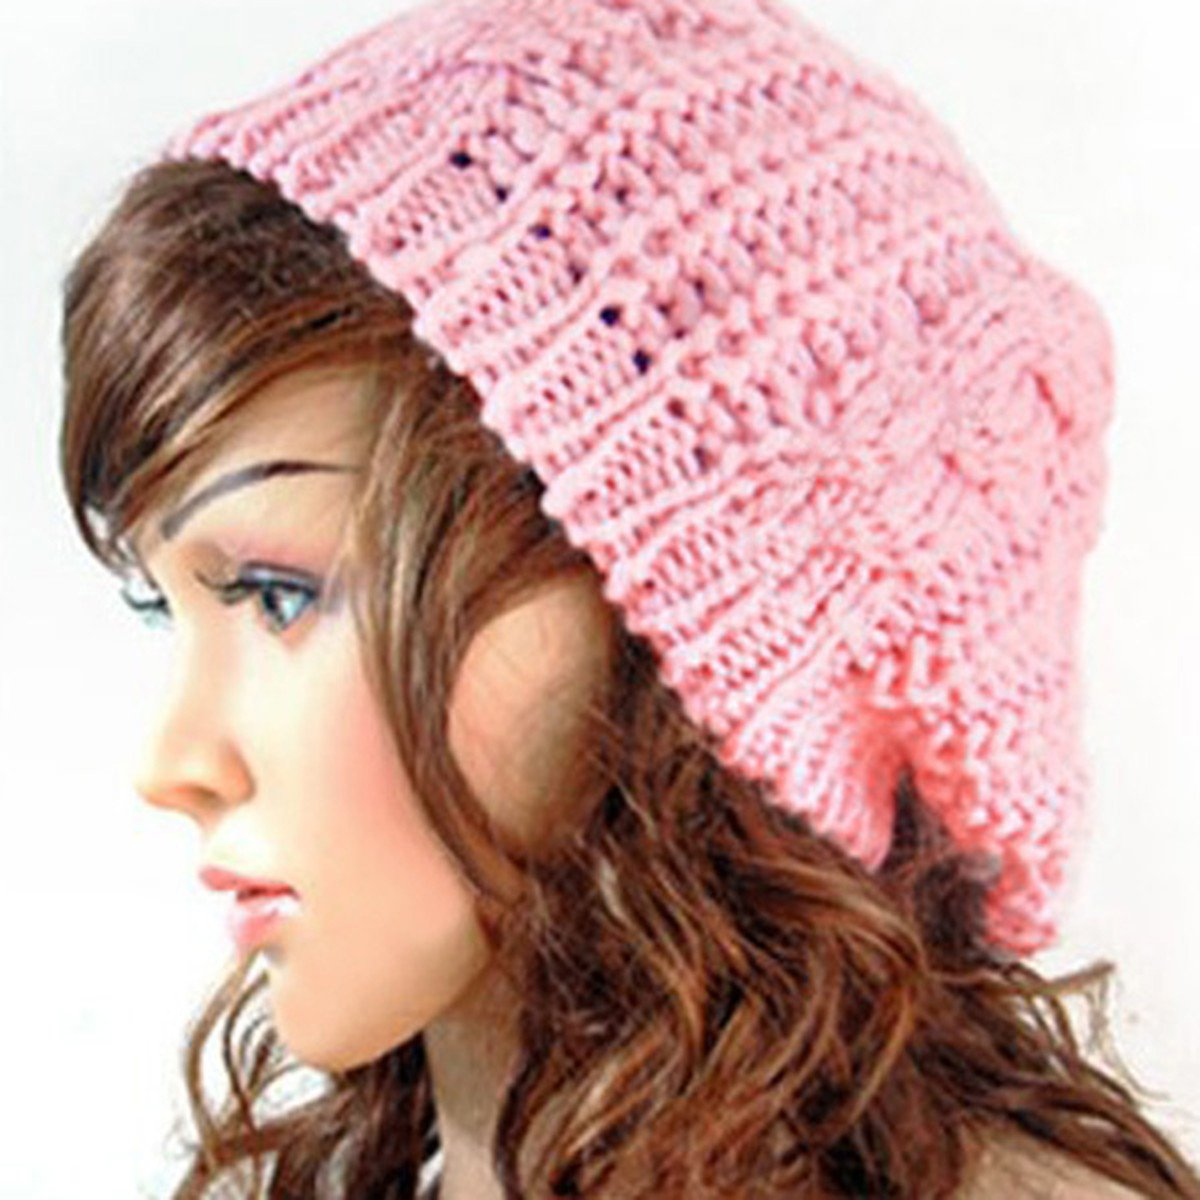 NEWBRAND New Women Baggy Beret Chunky Knit Knitted Braided Beanie Hat Ski Cap Pink<br><br>Aliexpress